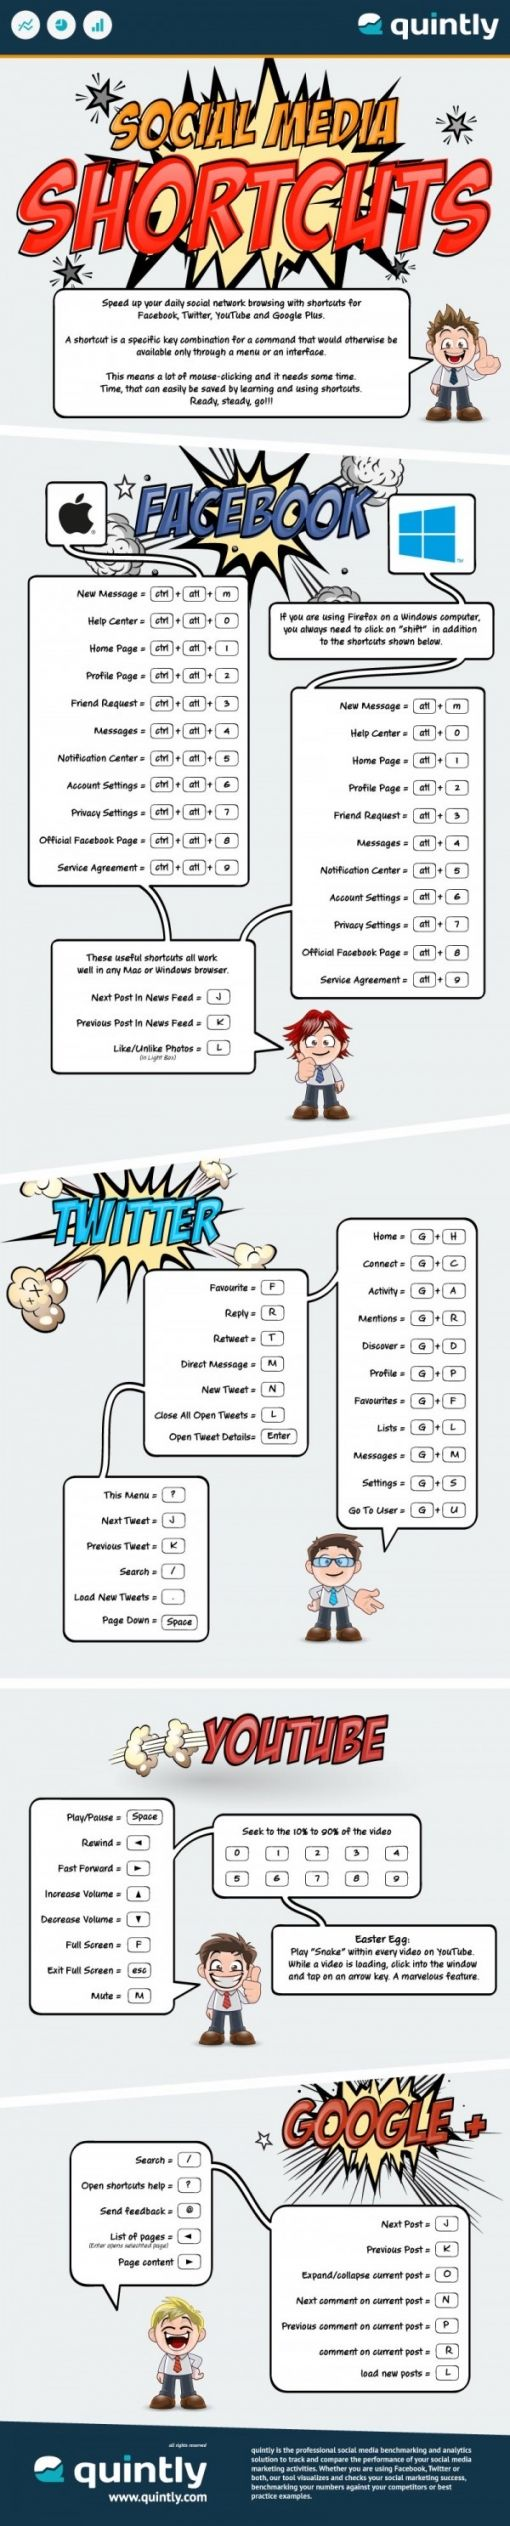 quintly_infographic_social_media_shortcuts-e1369180615960